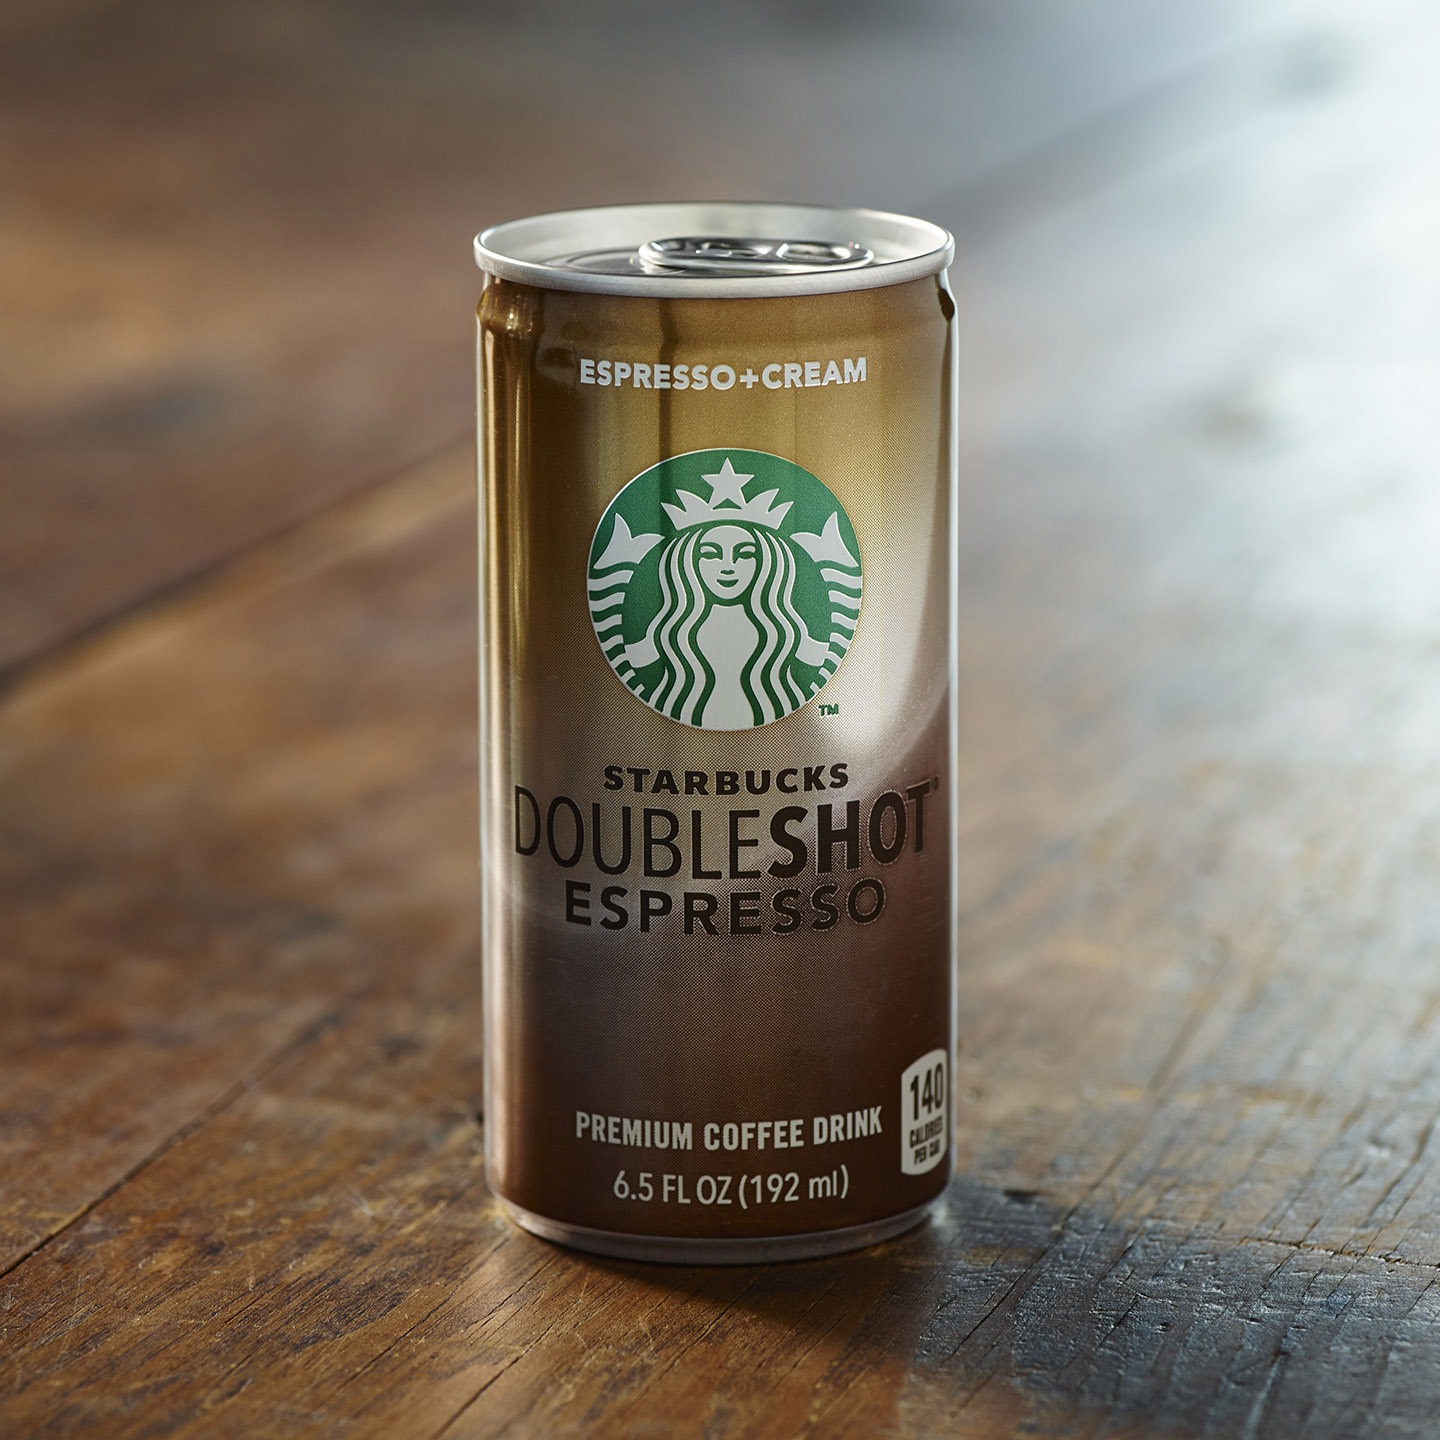 Starbucks Doubleshot Espresso Cream Starbucks Coffee Company